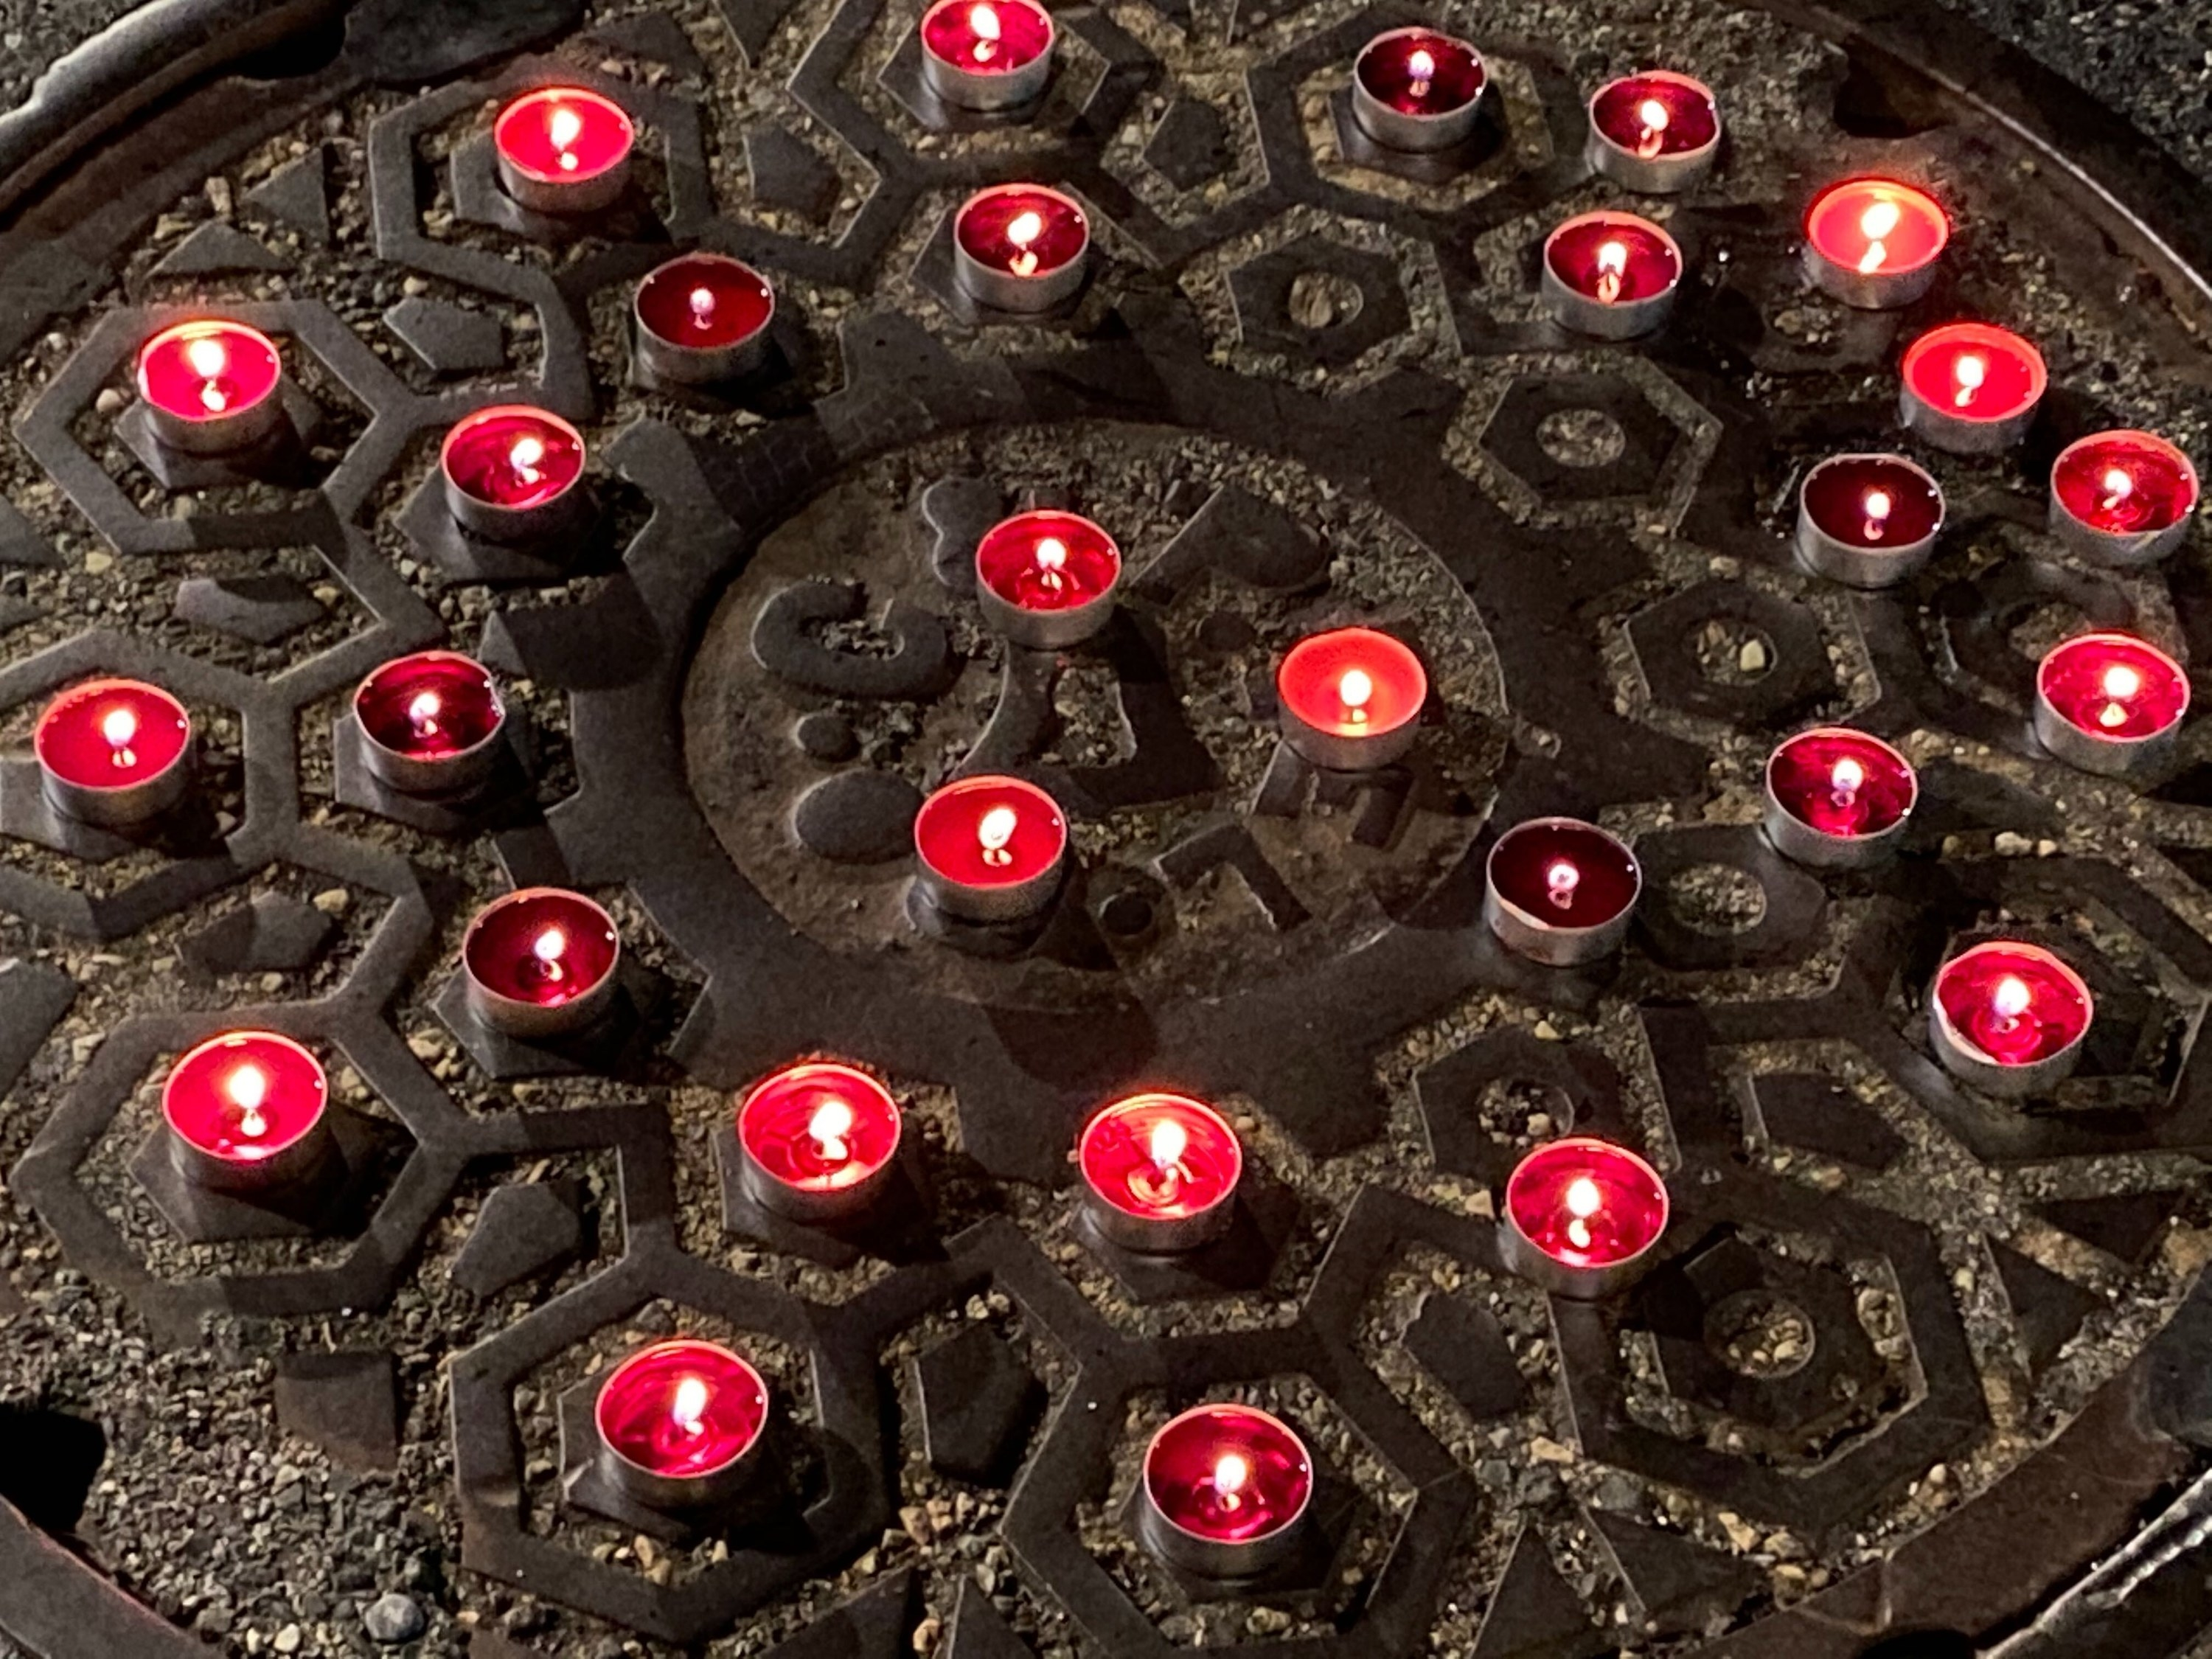 A small vigil of red candles burning atop a sewage manhole cover